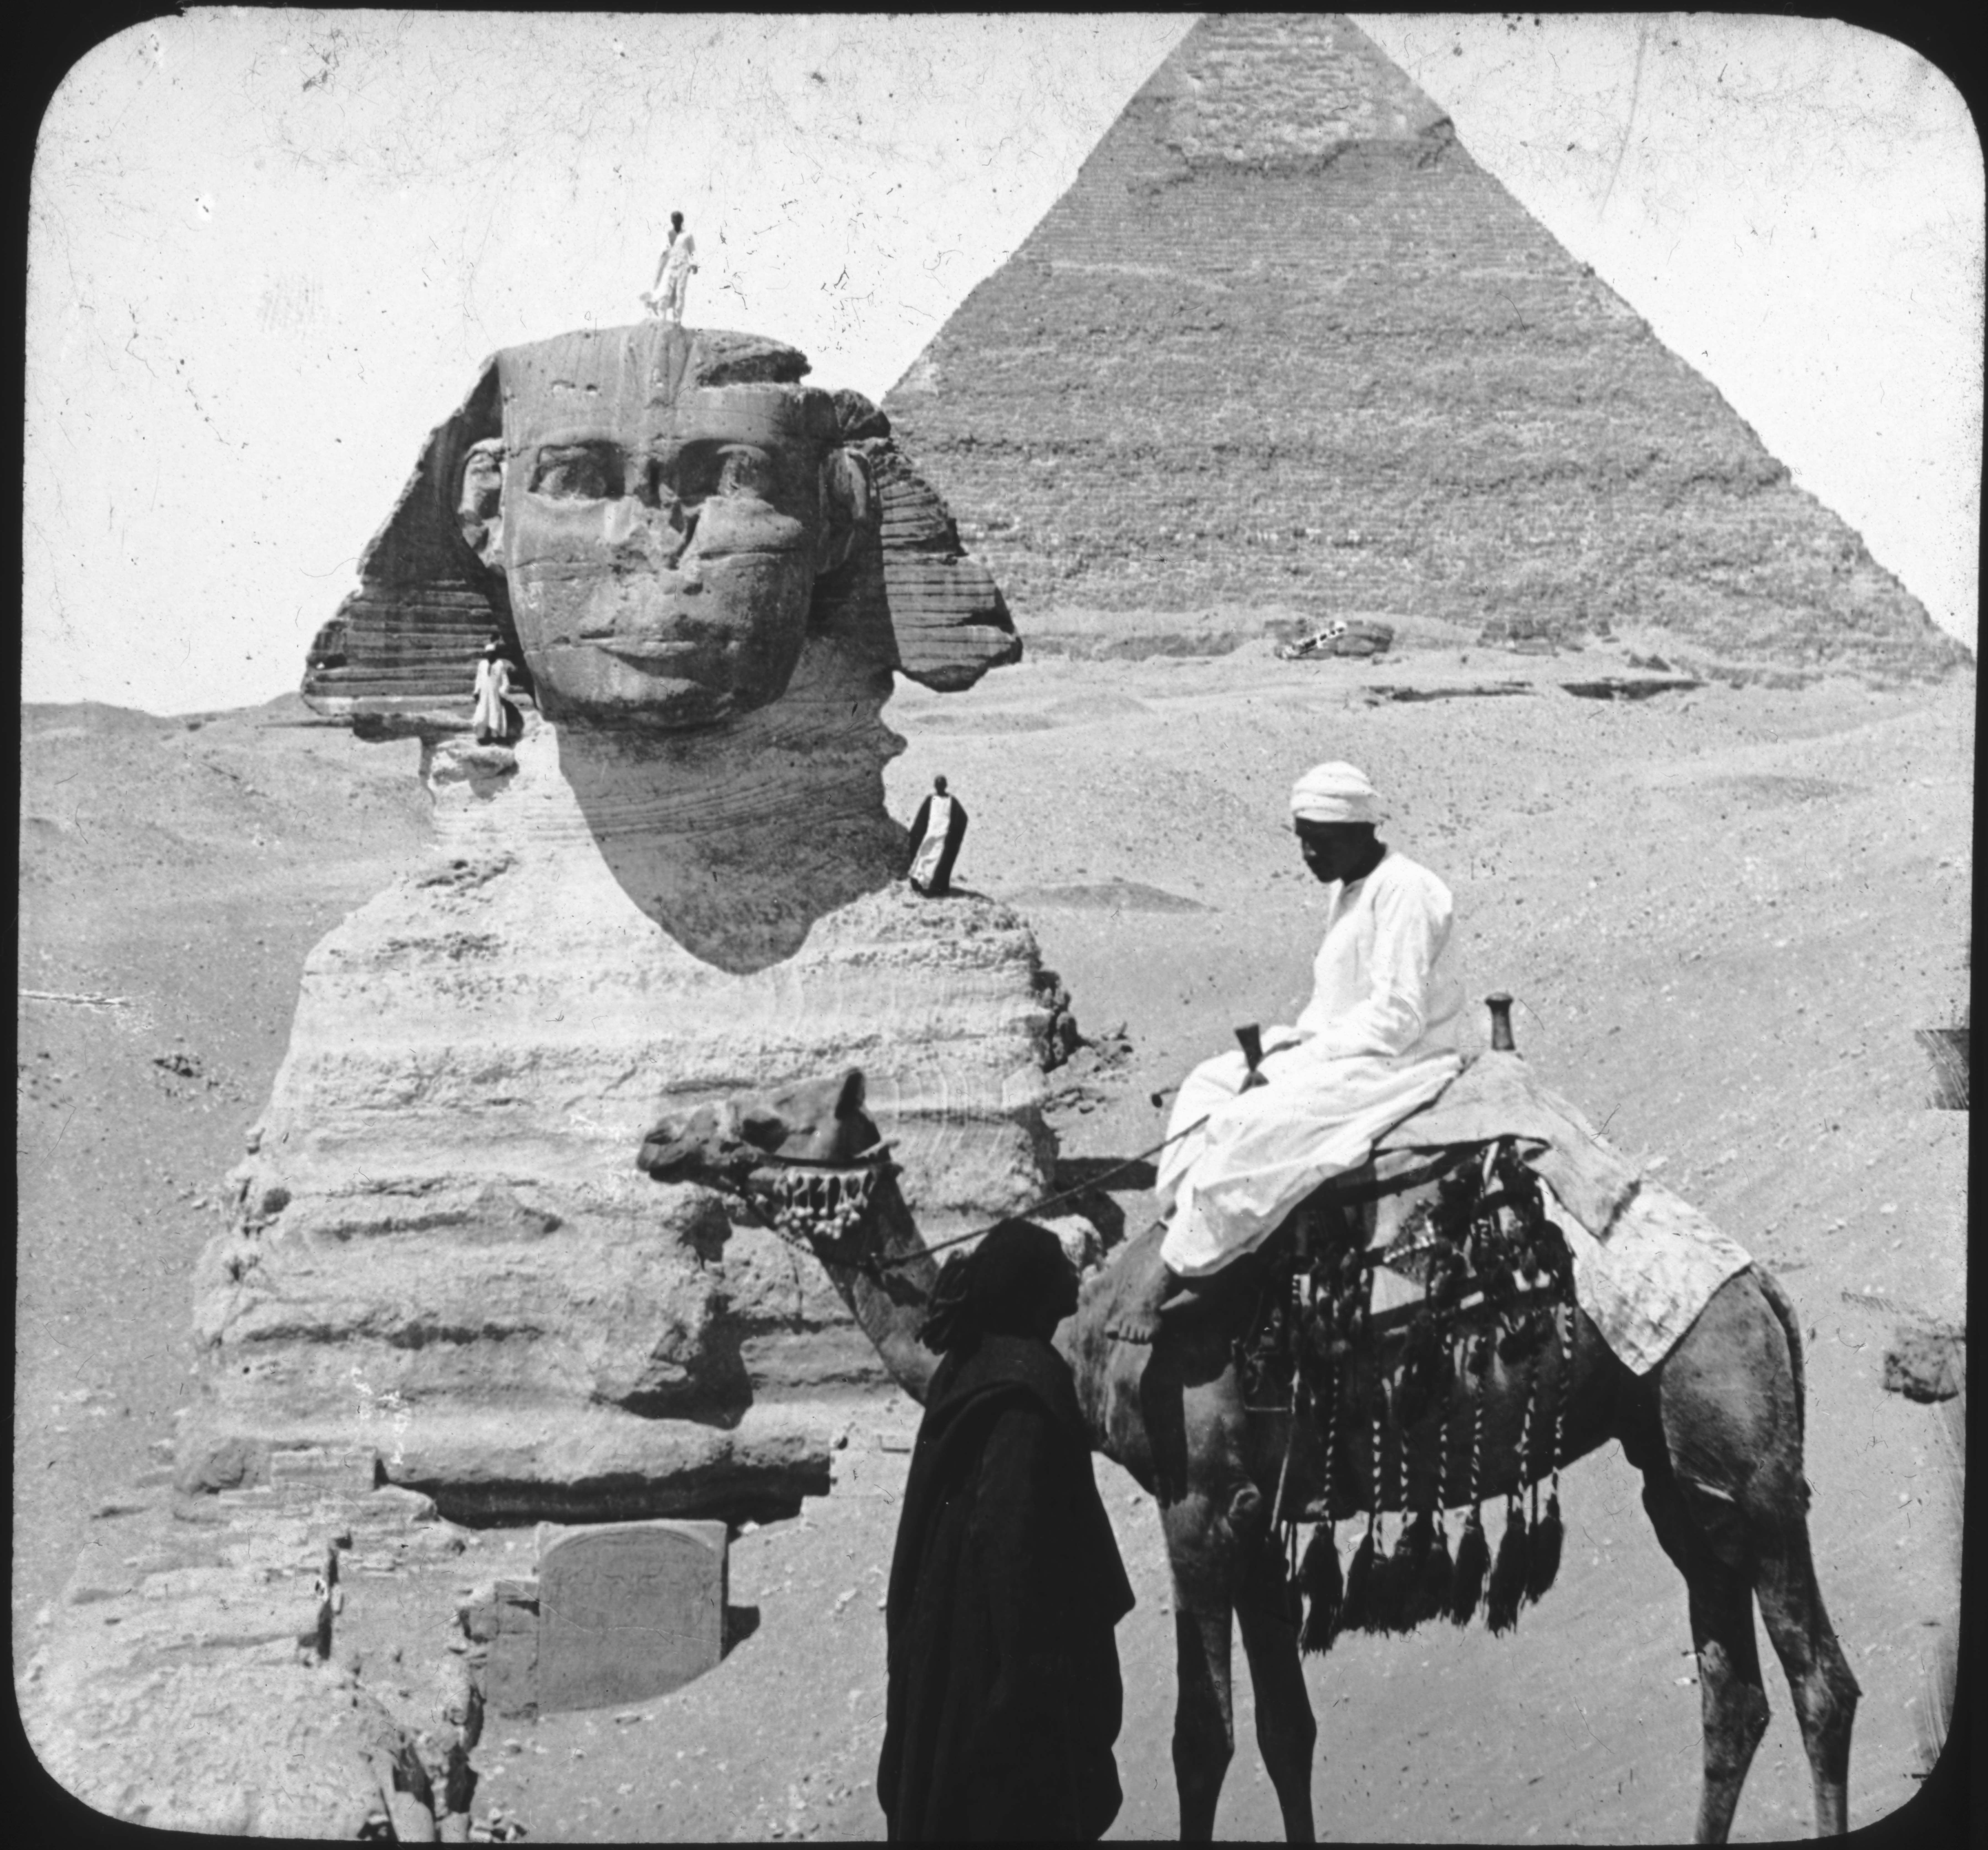 The Sphinx and the Second Pyramid, Gizeh, Egypt.